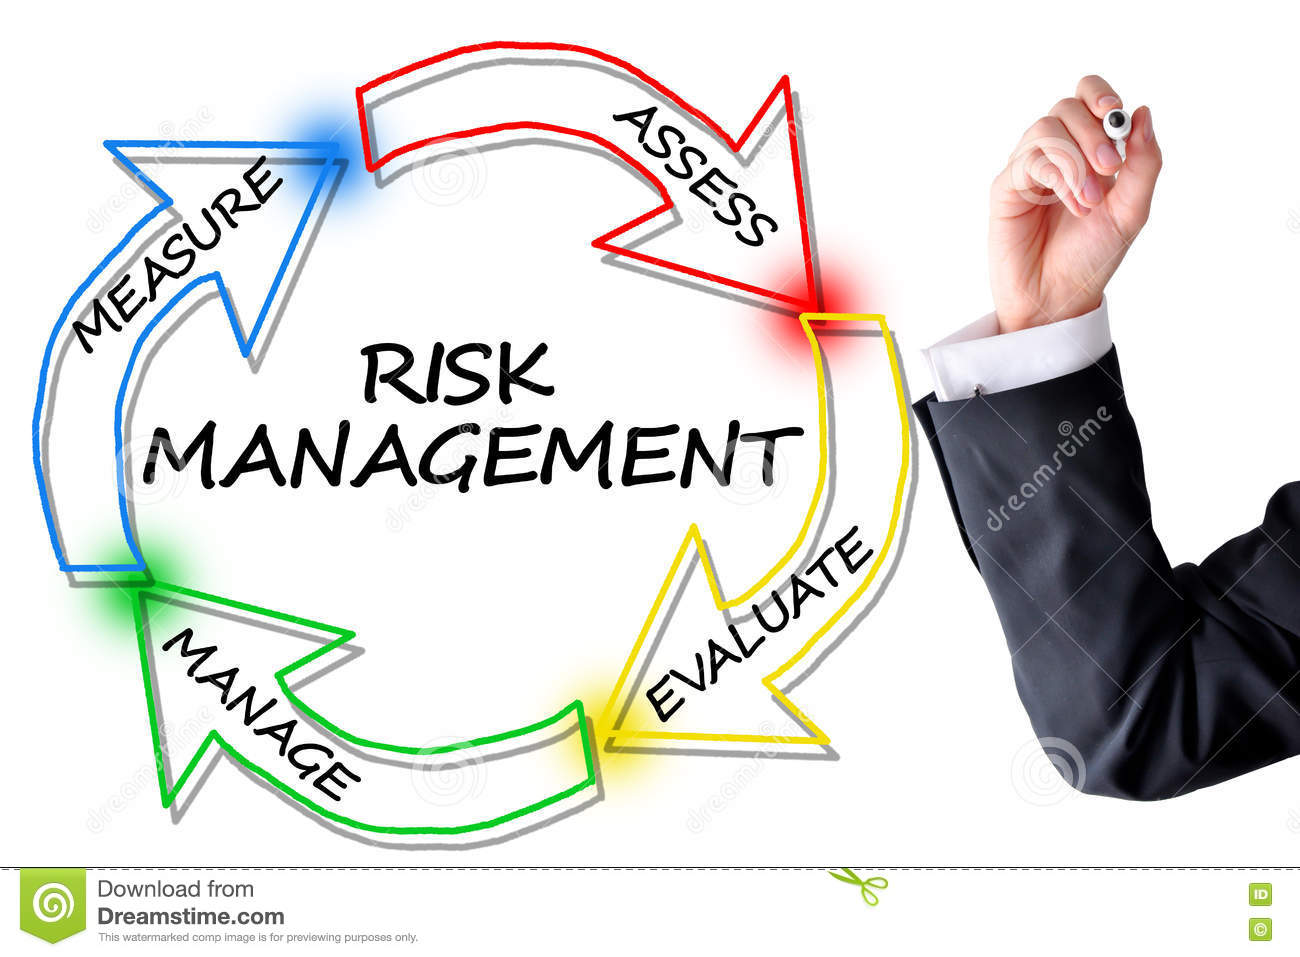 risk management diagram to prevent or reduce accidents